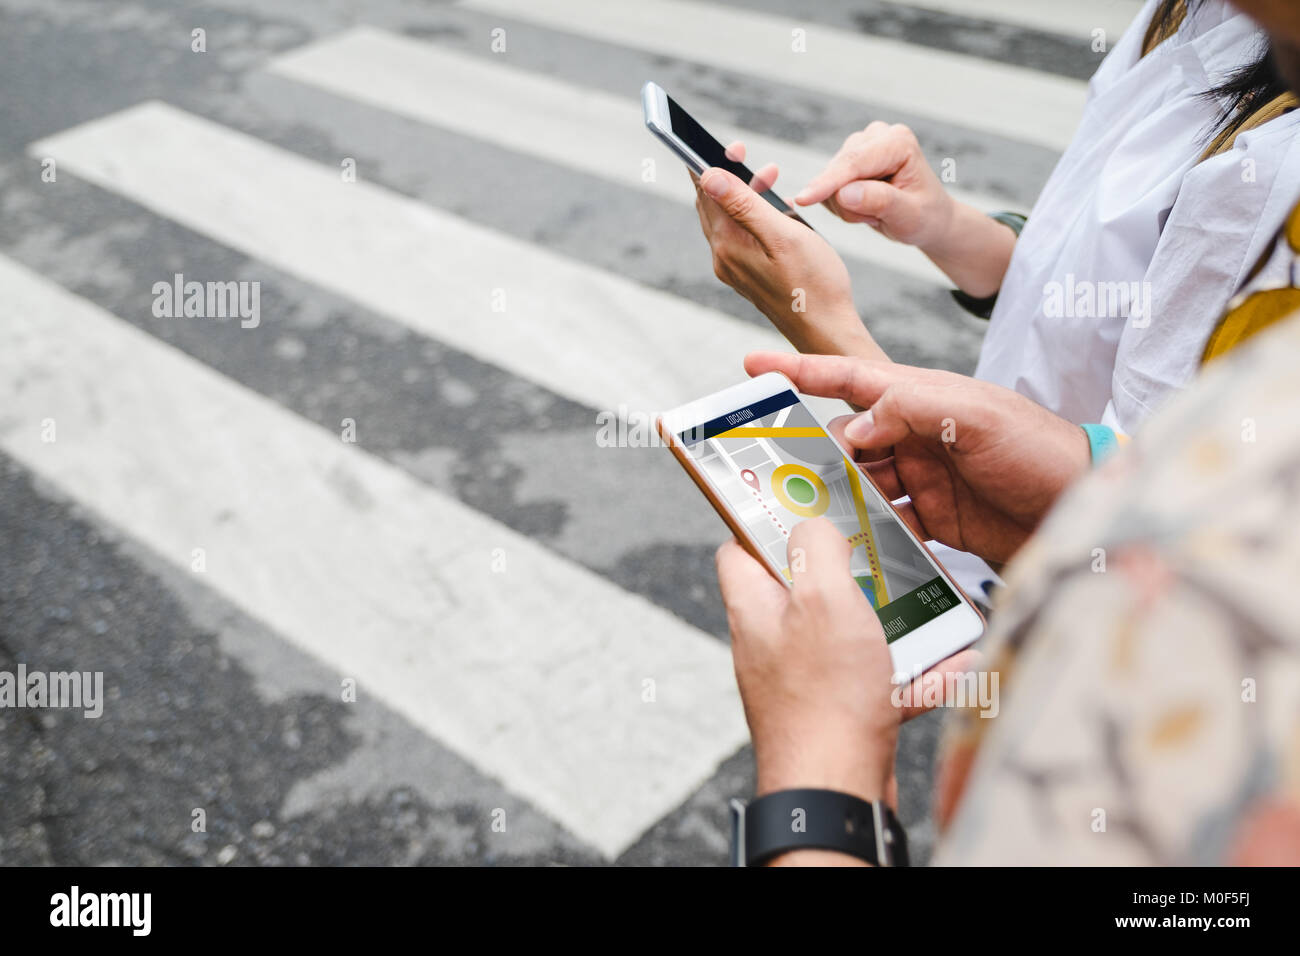 Traveler use map on mobile phone app to search for route location of place with gps on street when travel in city,Technology - Stock Image